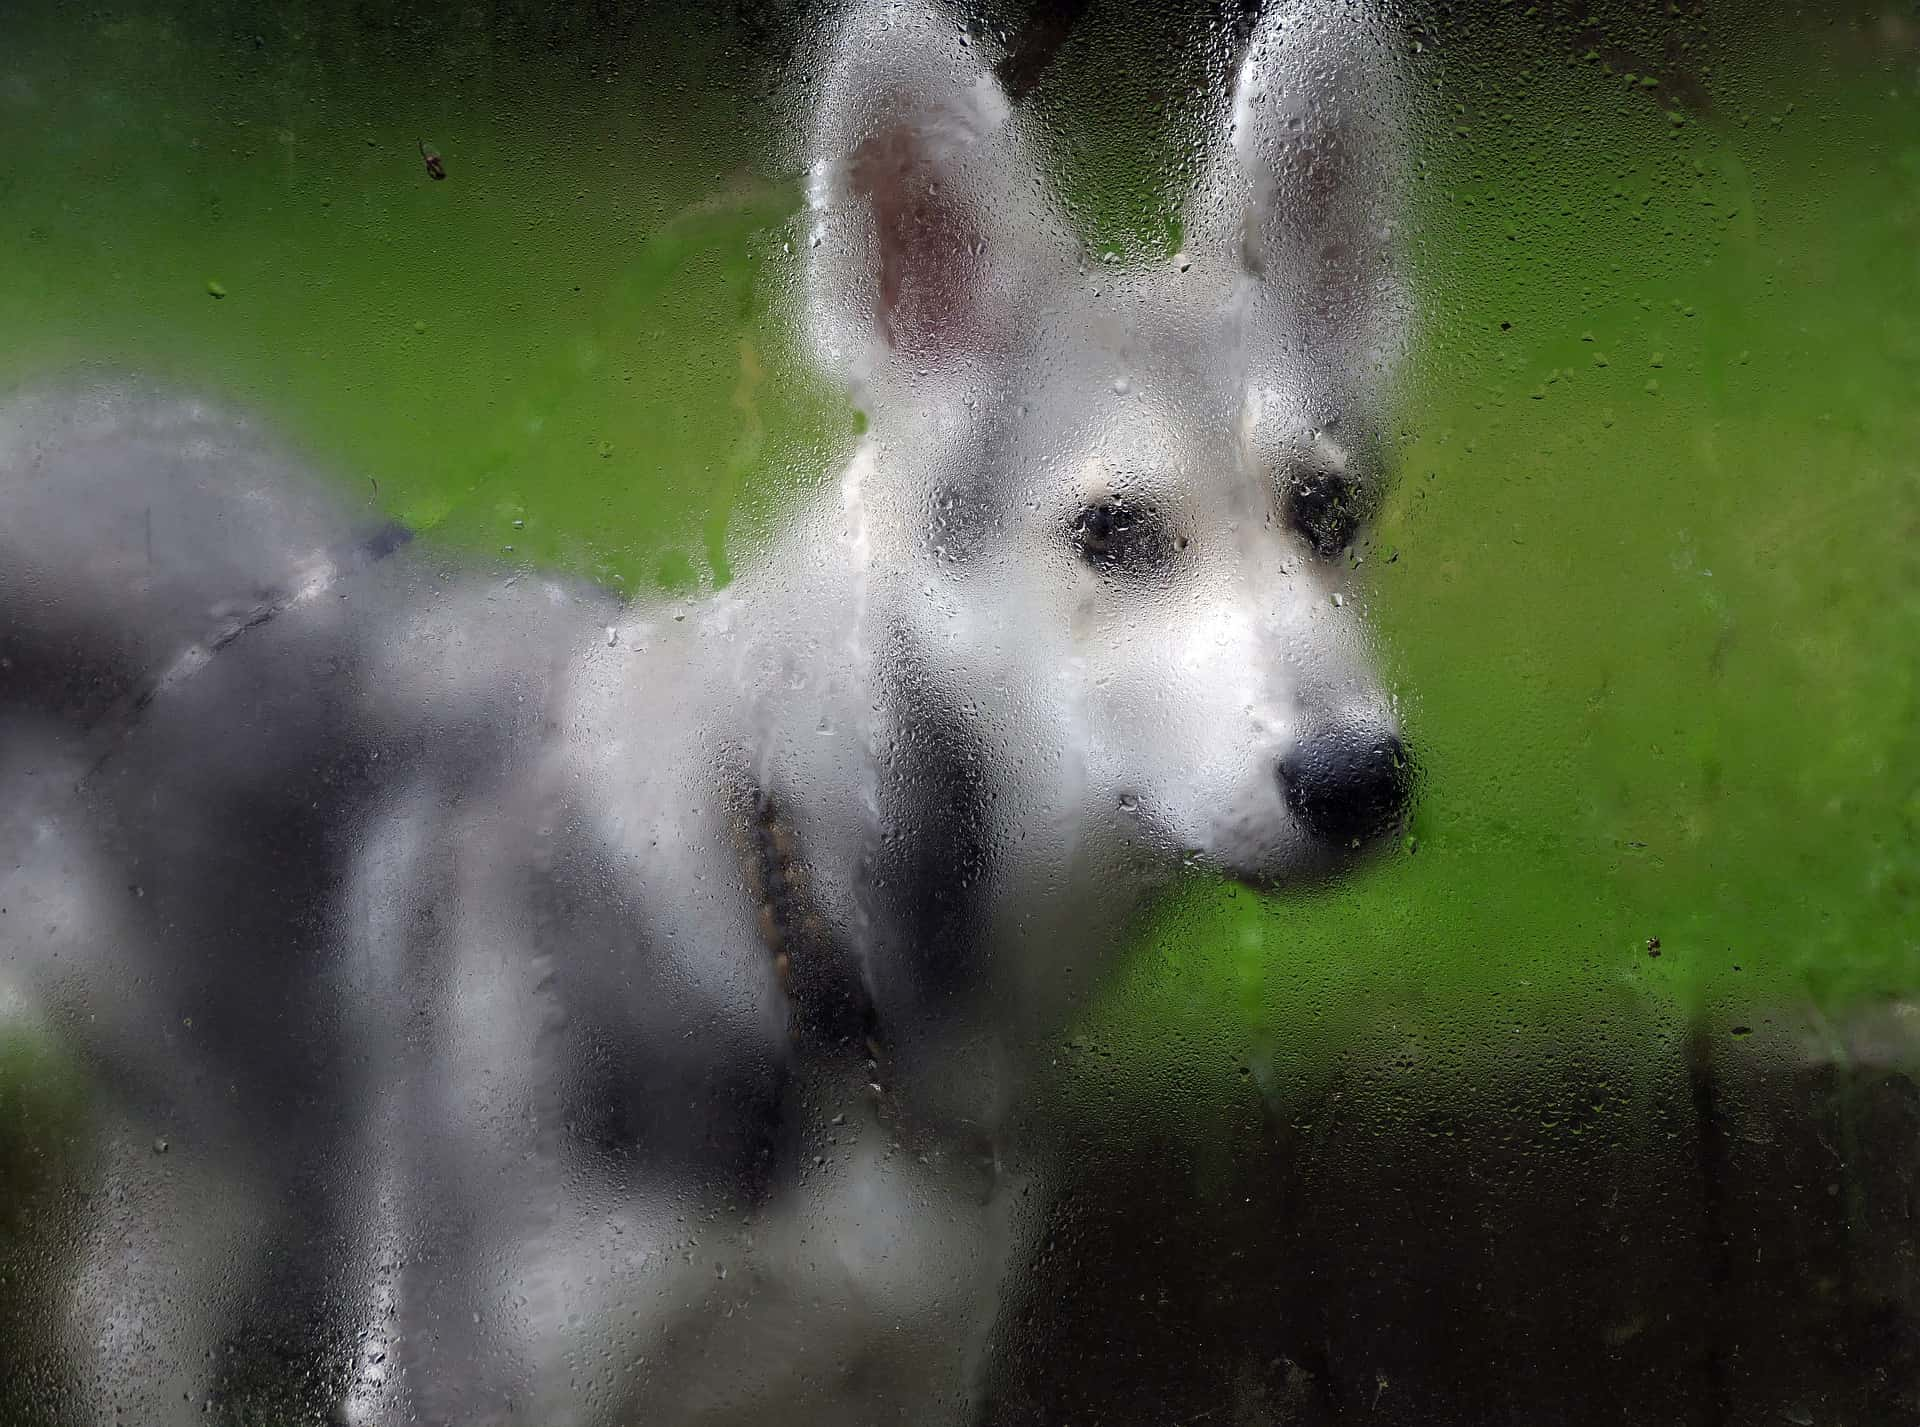 Potty training dogs in the rain - Acme Canine